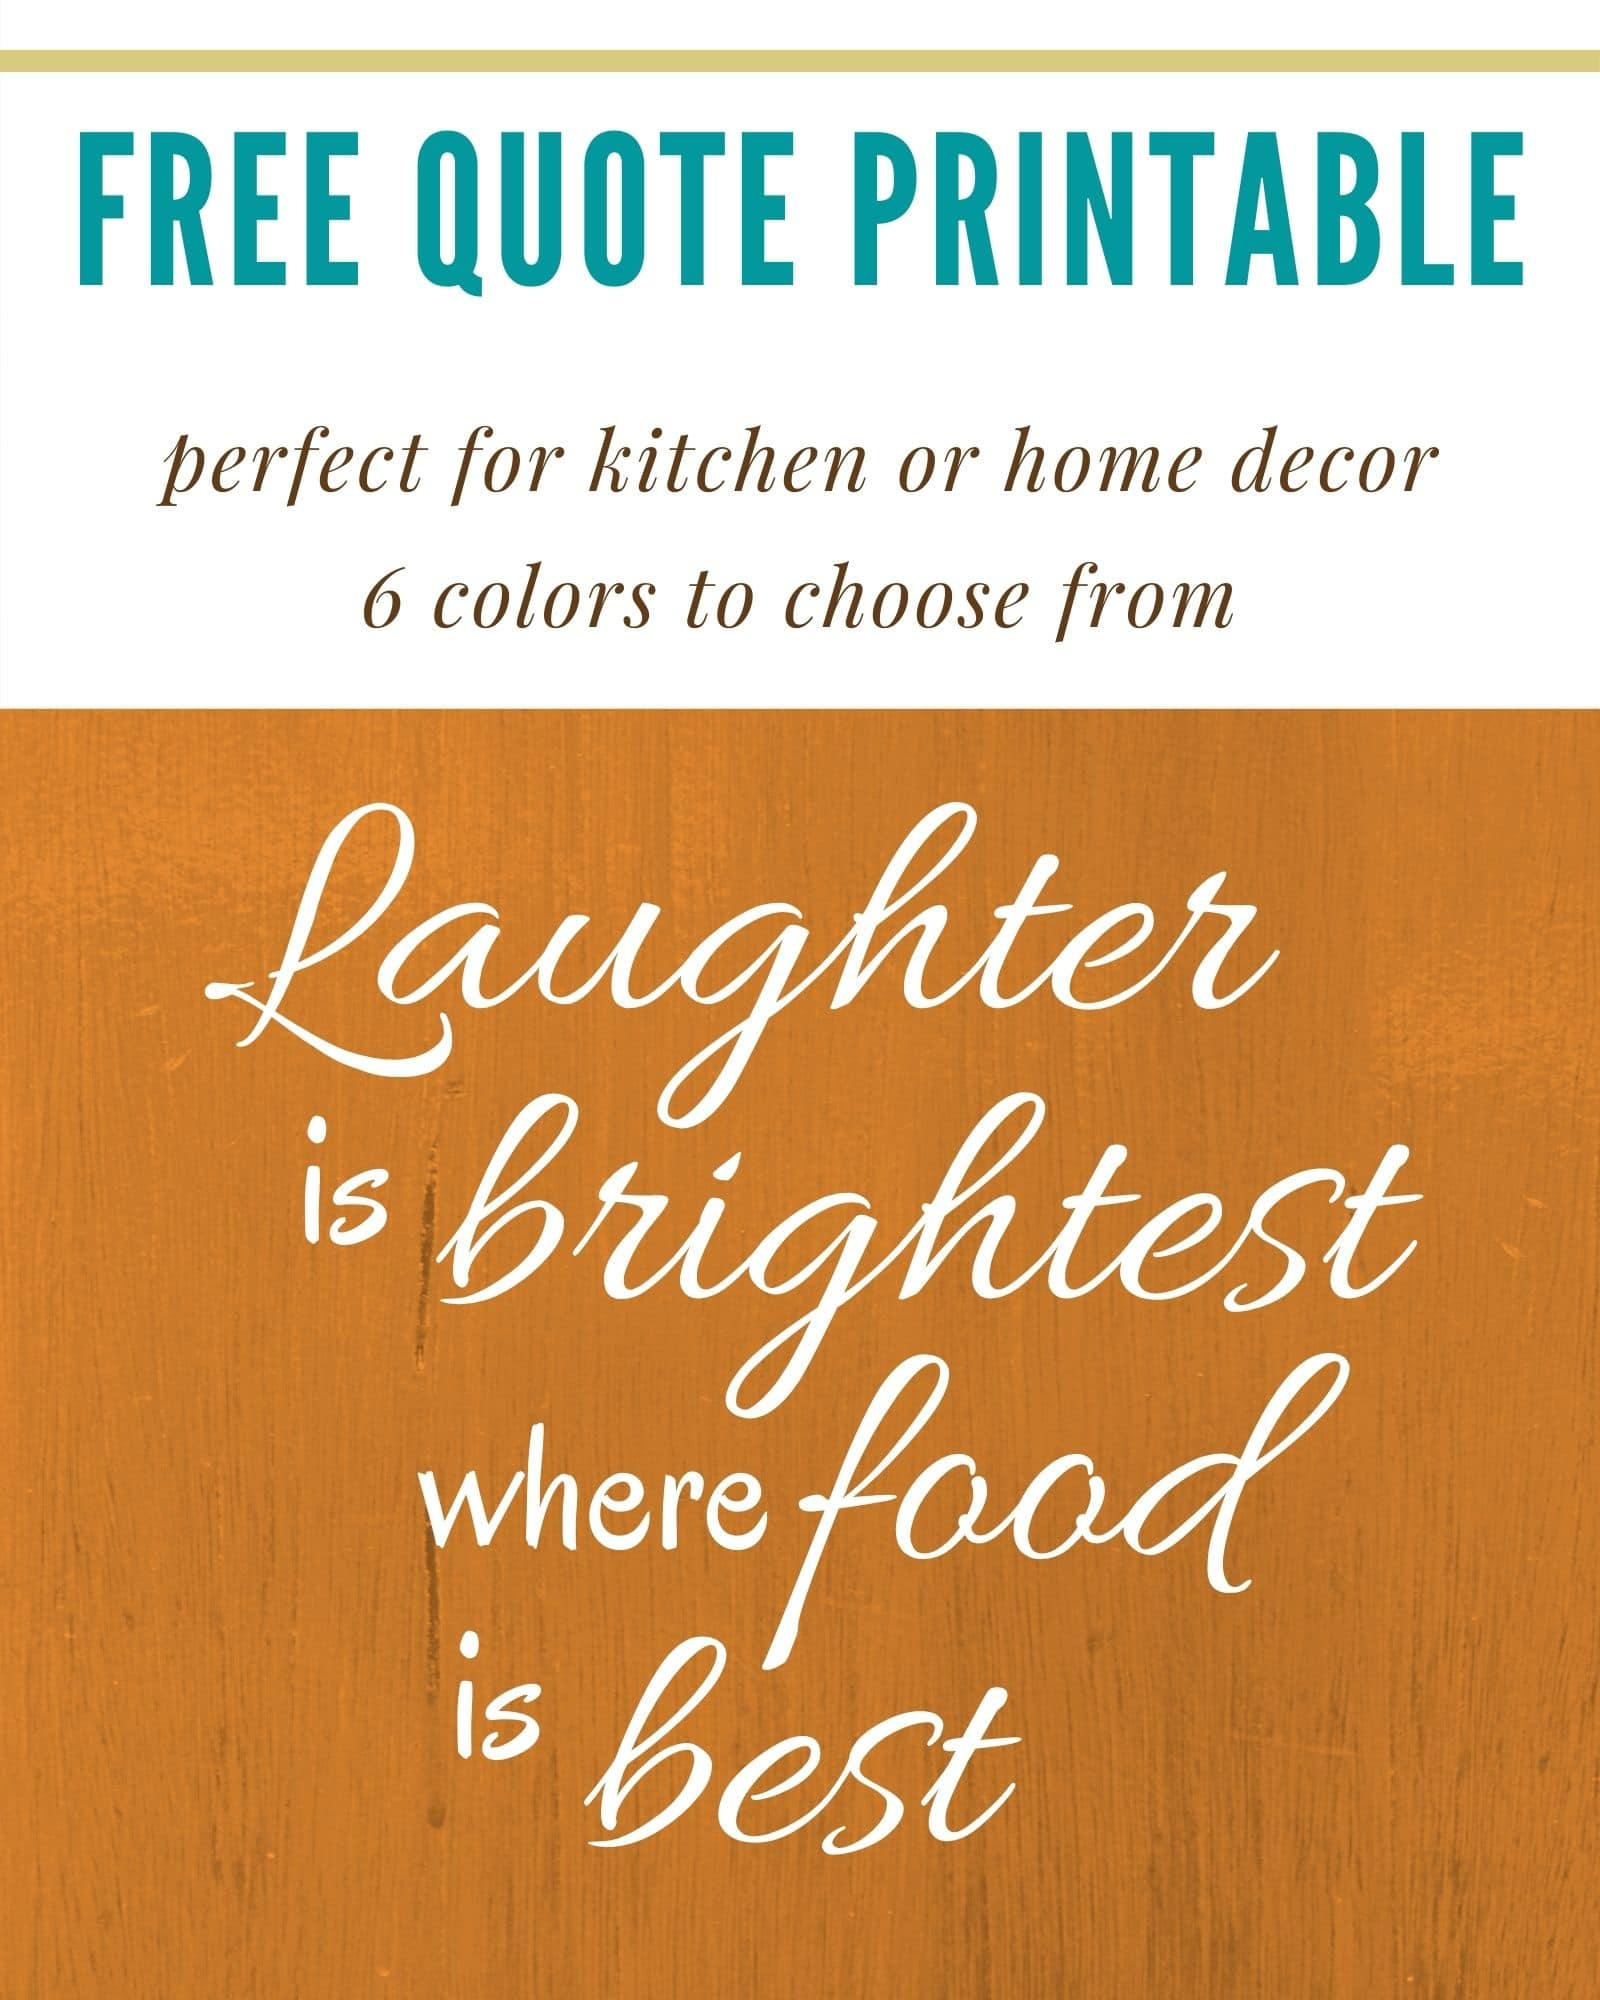 Free chalkboard printable: Laughter is brightest where food is best- Irish proverb |by Jonesin' For Taste